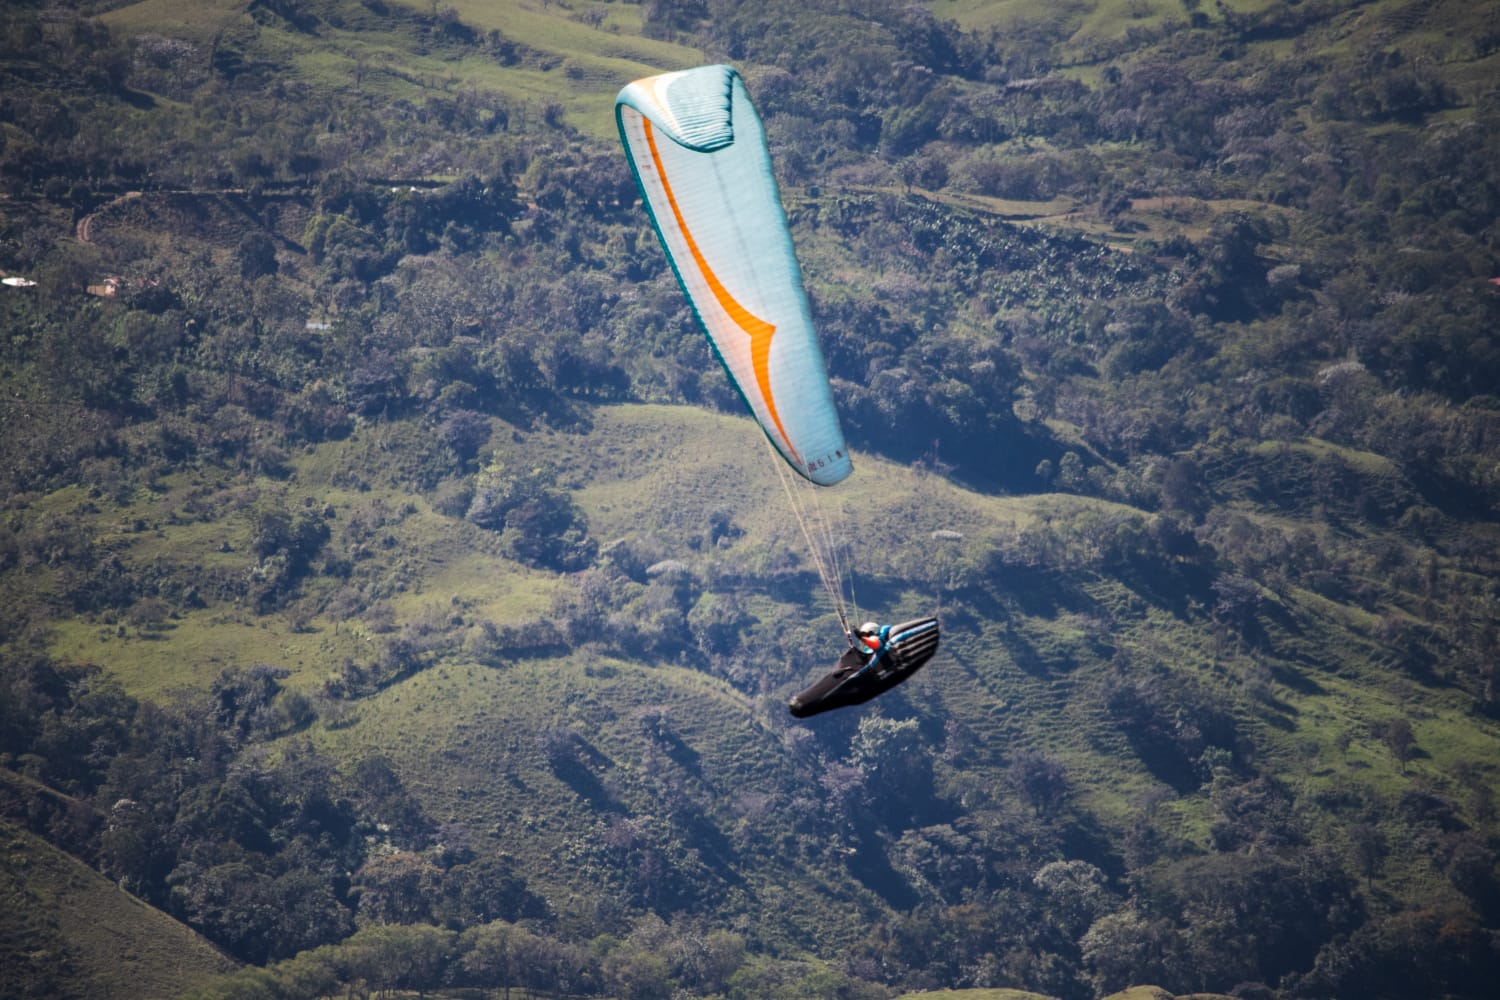 Career - Zion started paragliding in 2011 at the age of 15, since then he has matured into a professional tandem instructor, business owner and competition pilot